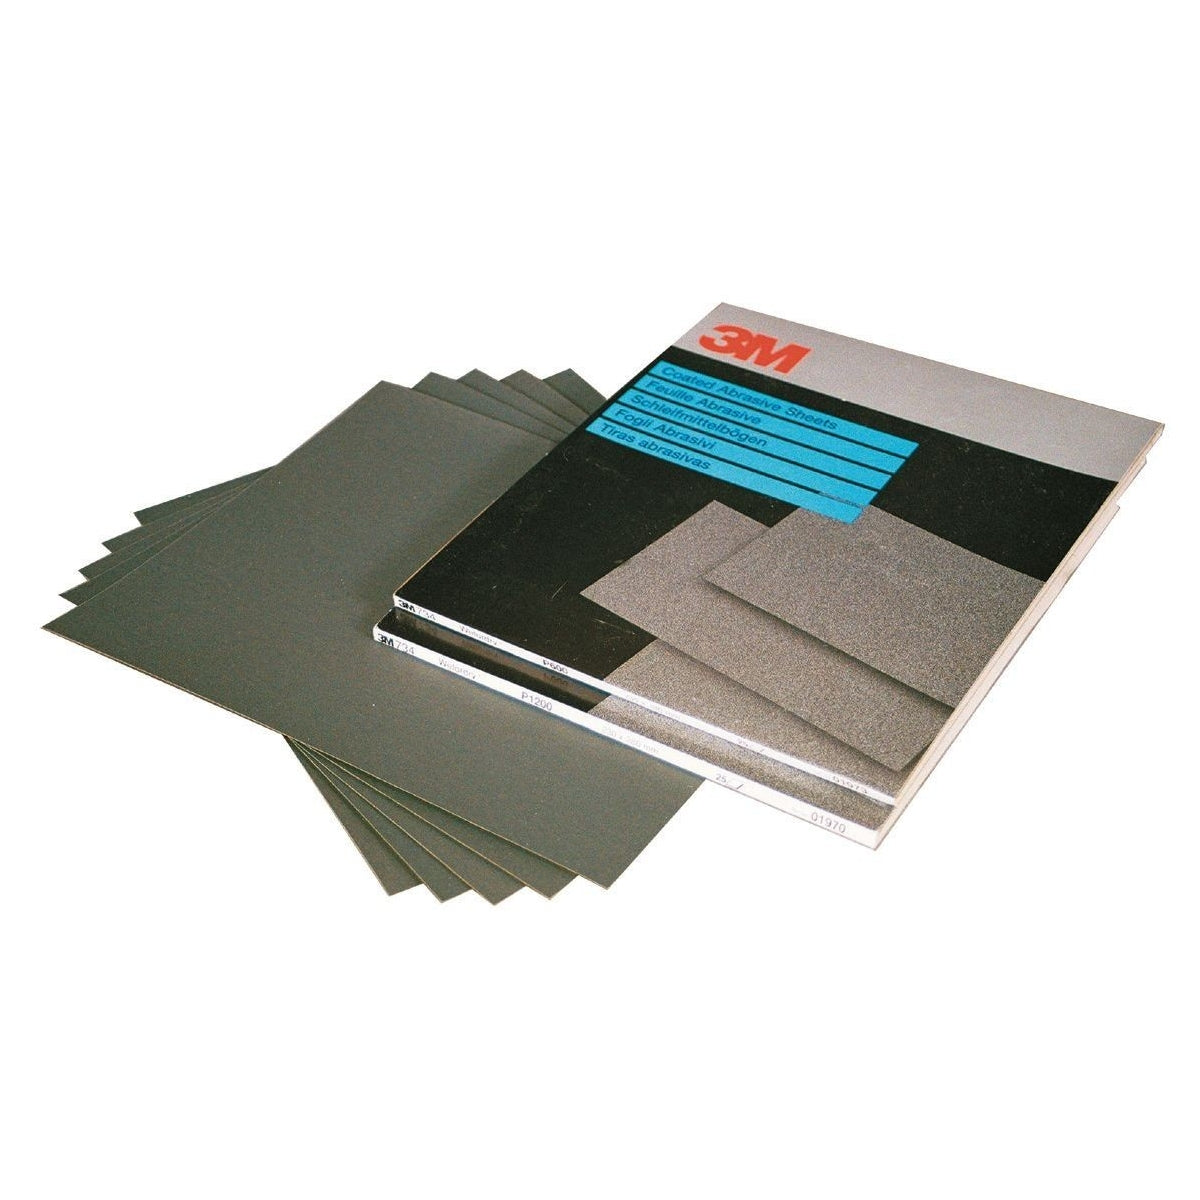 3M Wet and Dry Sandpaper 1500 Grit